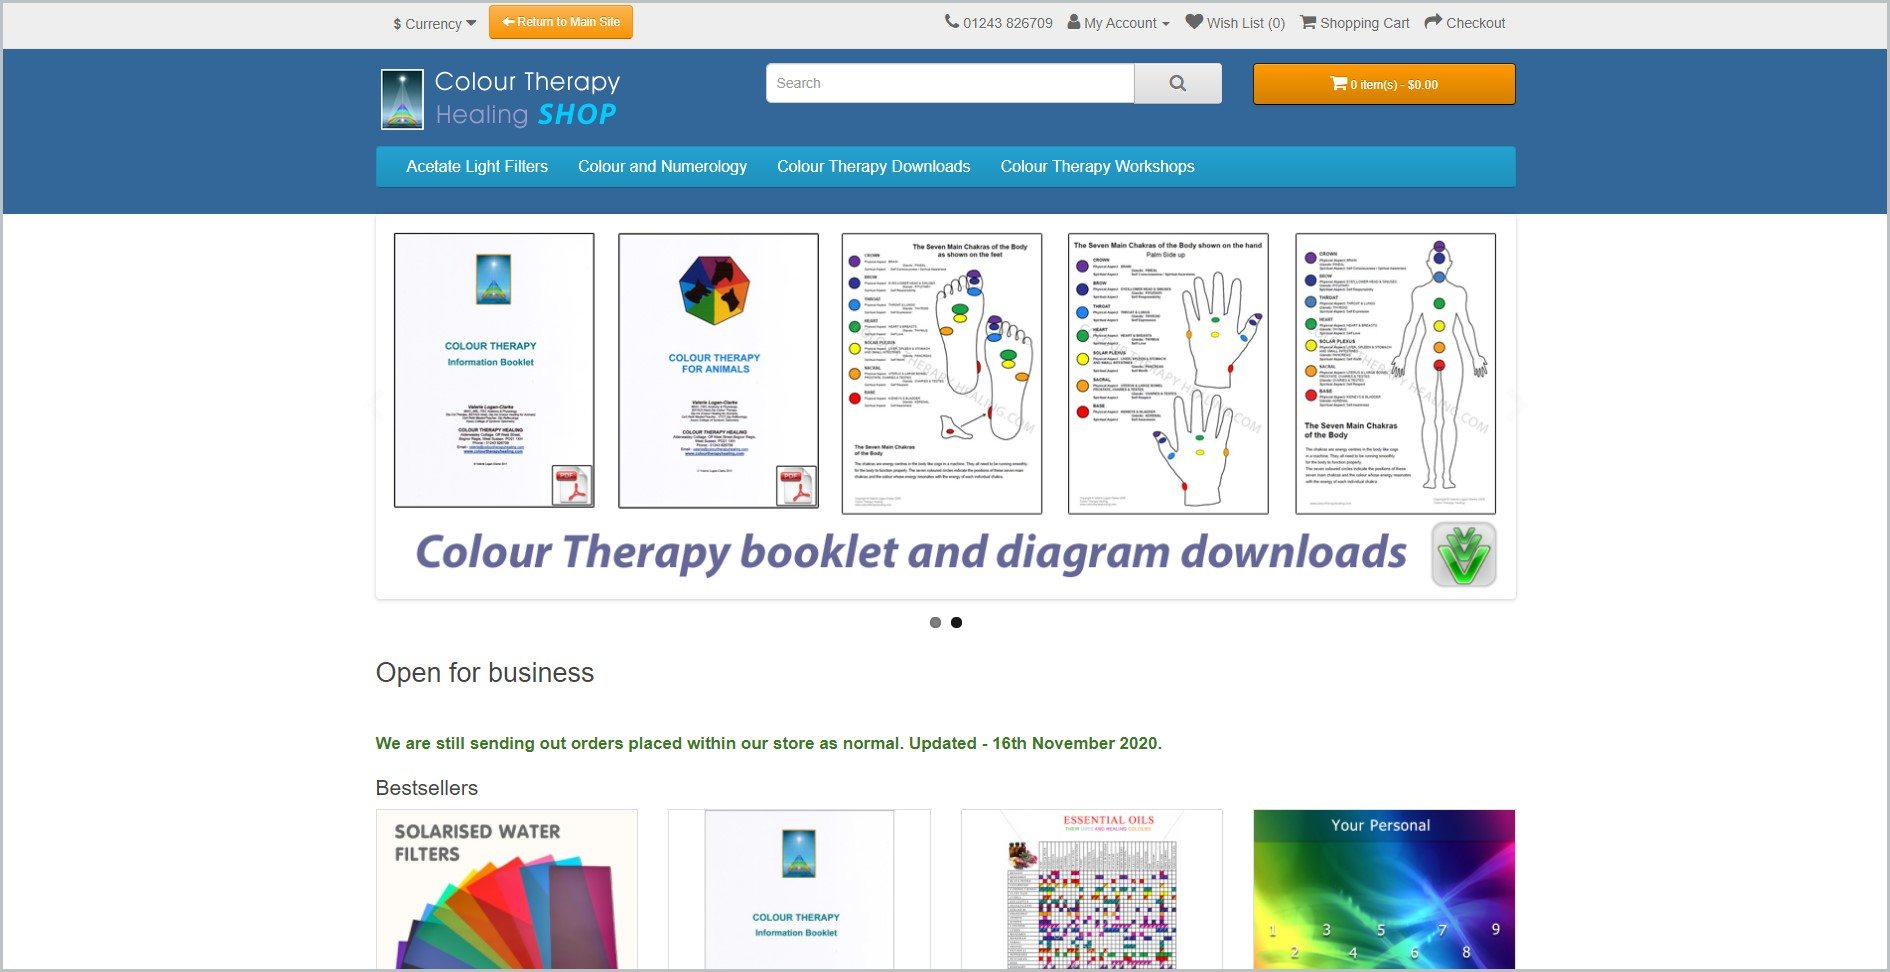 screenshot of Colour Therapy Healing homepage with blue header with the website's name, search bar, and main navigation menu